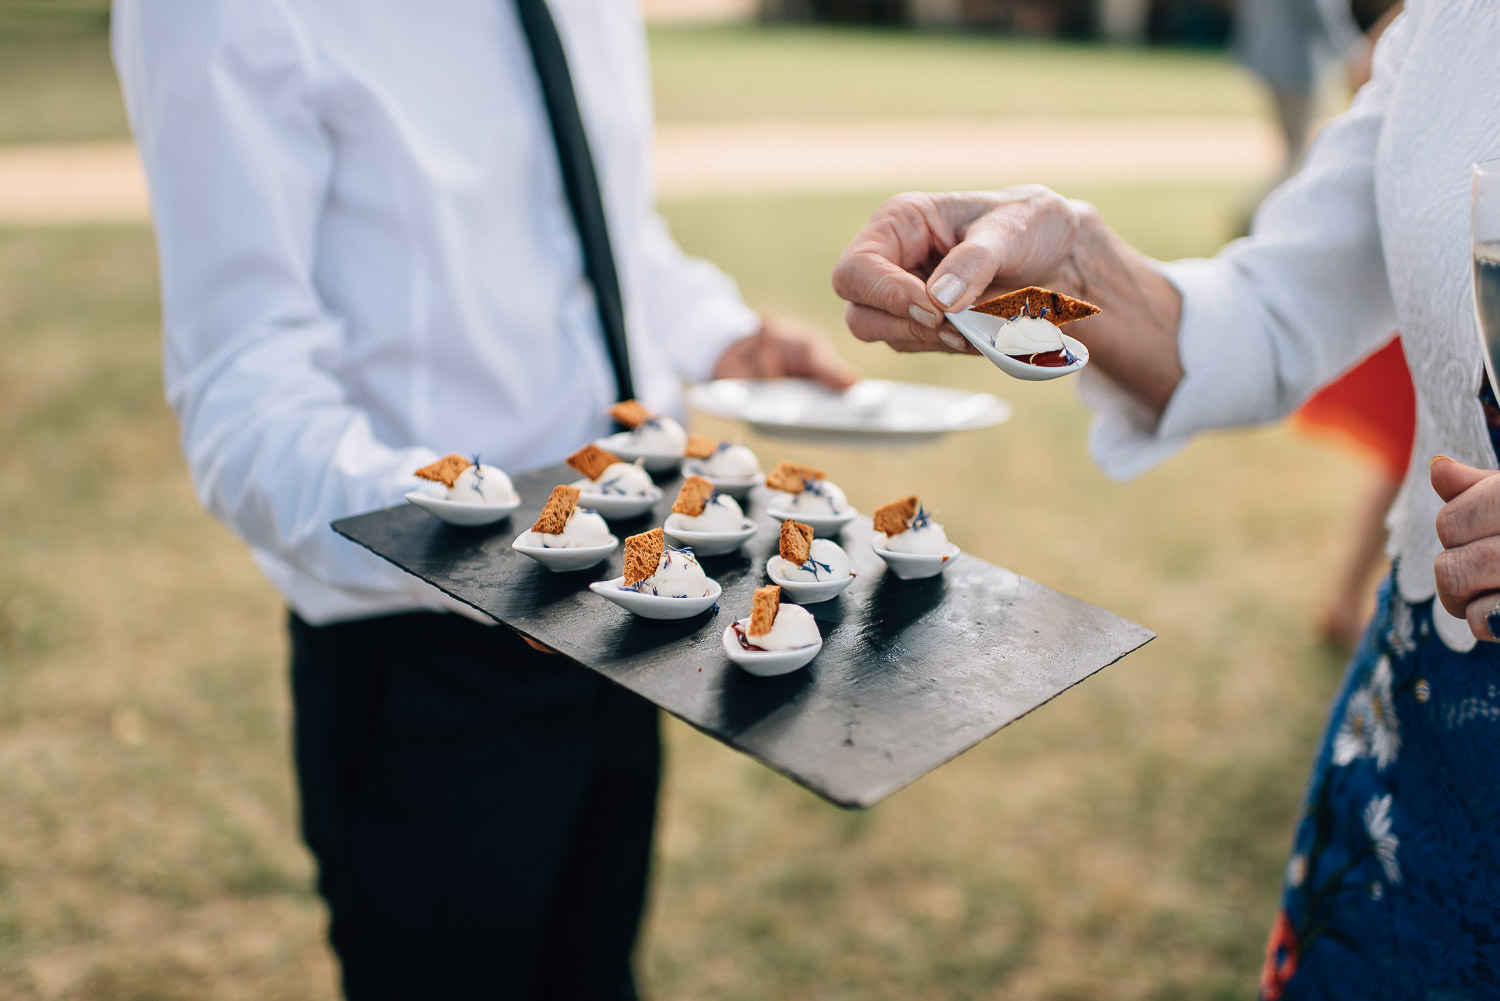 Food served at chateau de la bourlie wedding by destination wedding photographer the shannons photography